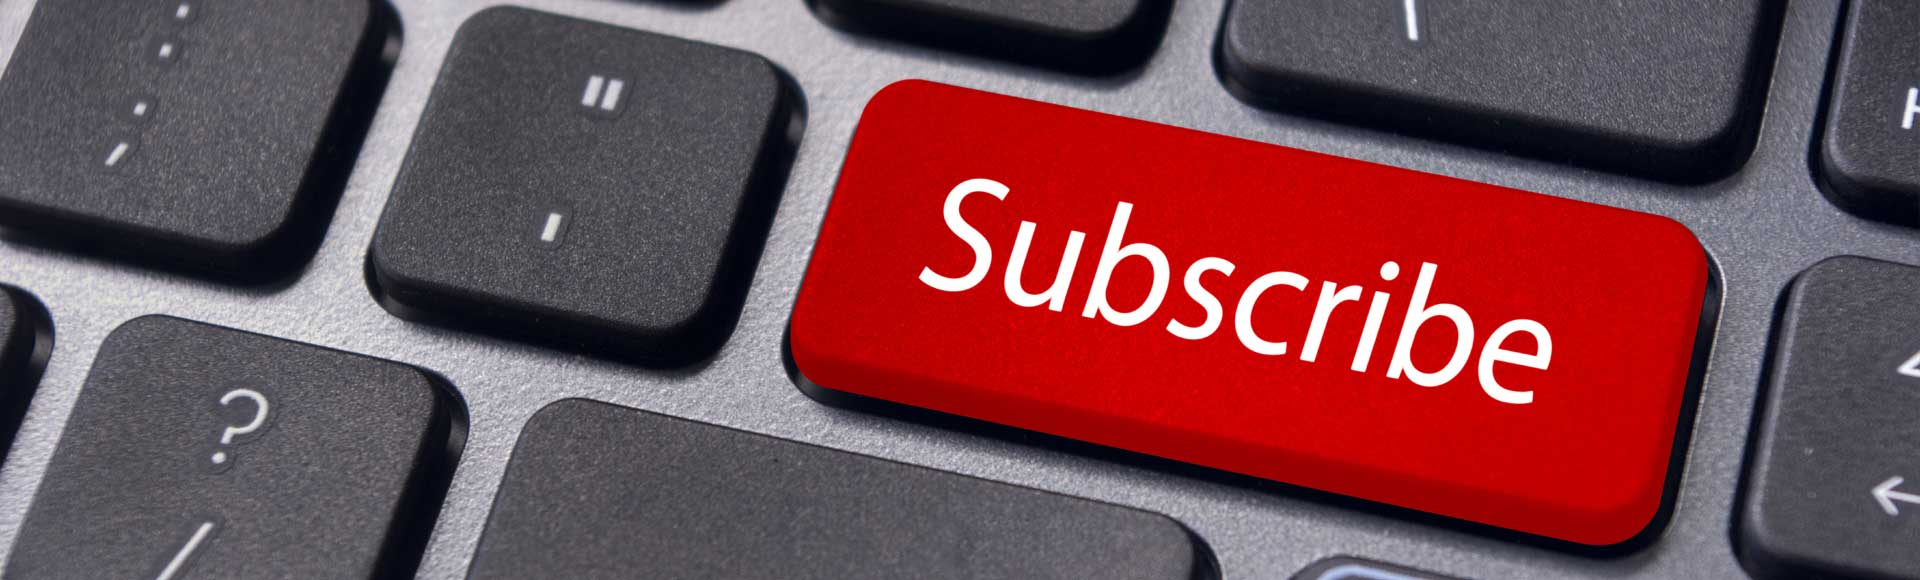 Red-Button-SUBSCRIBE-CYCT_1920x580